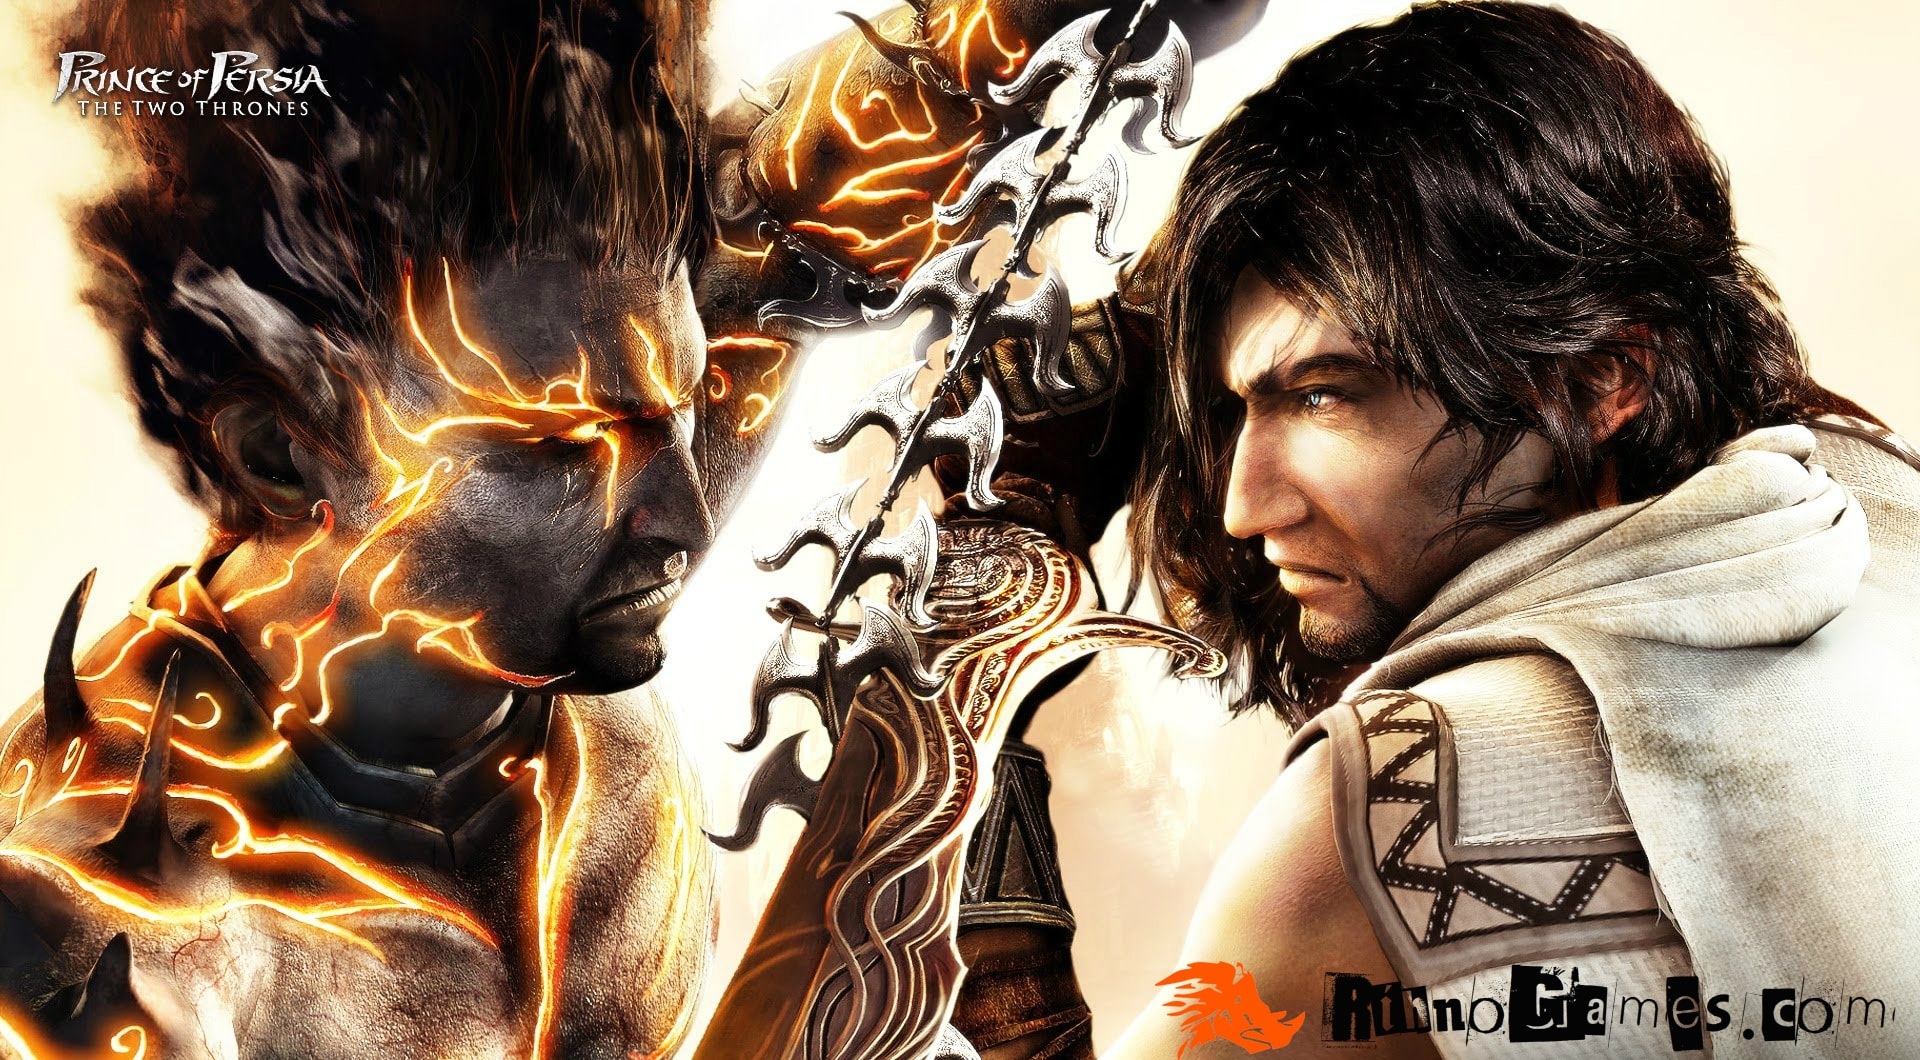 Prince of Persia the Two Thrones System Requirements